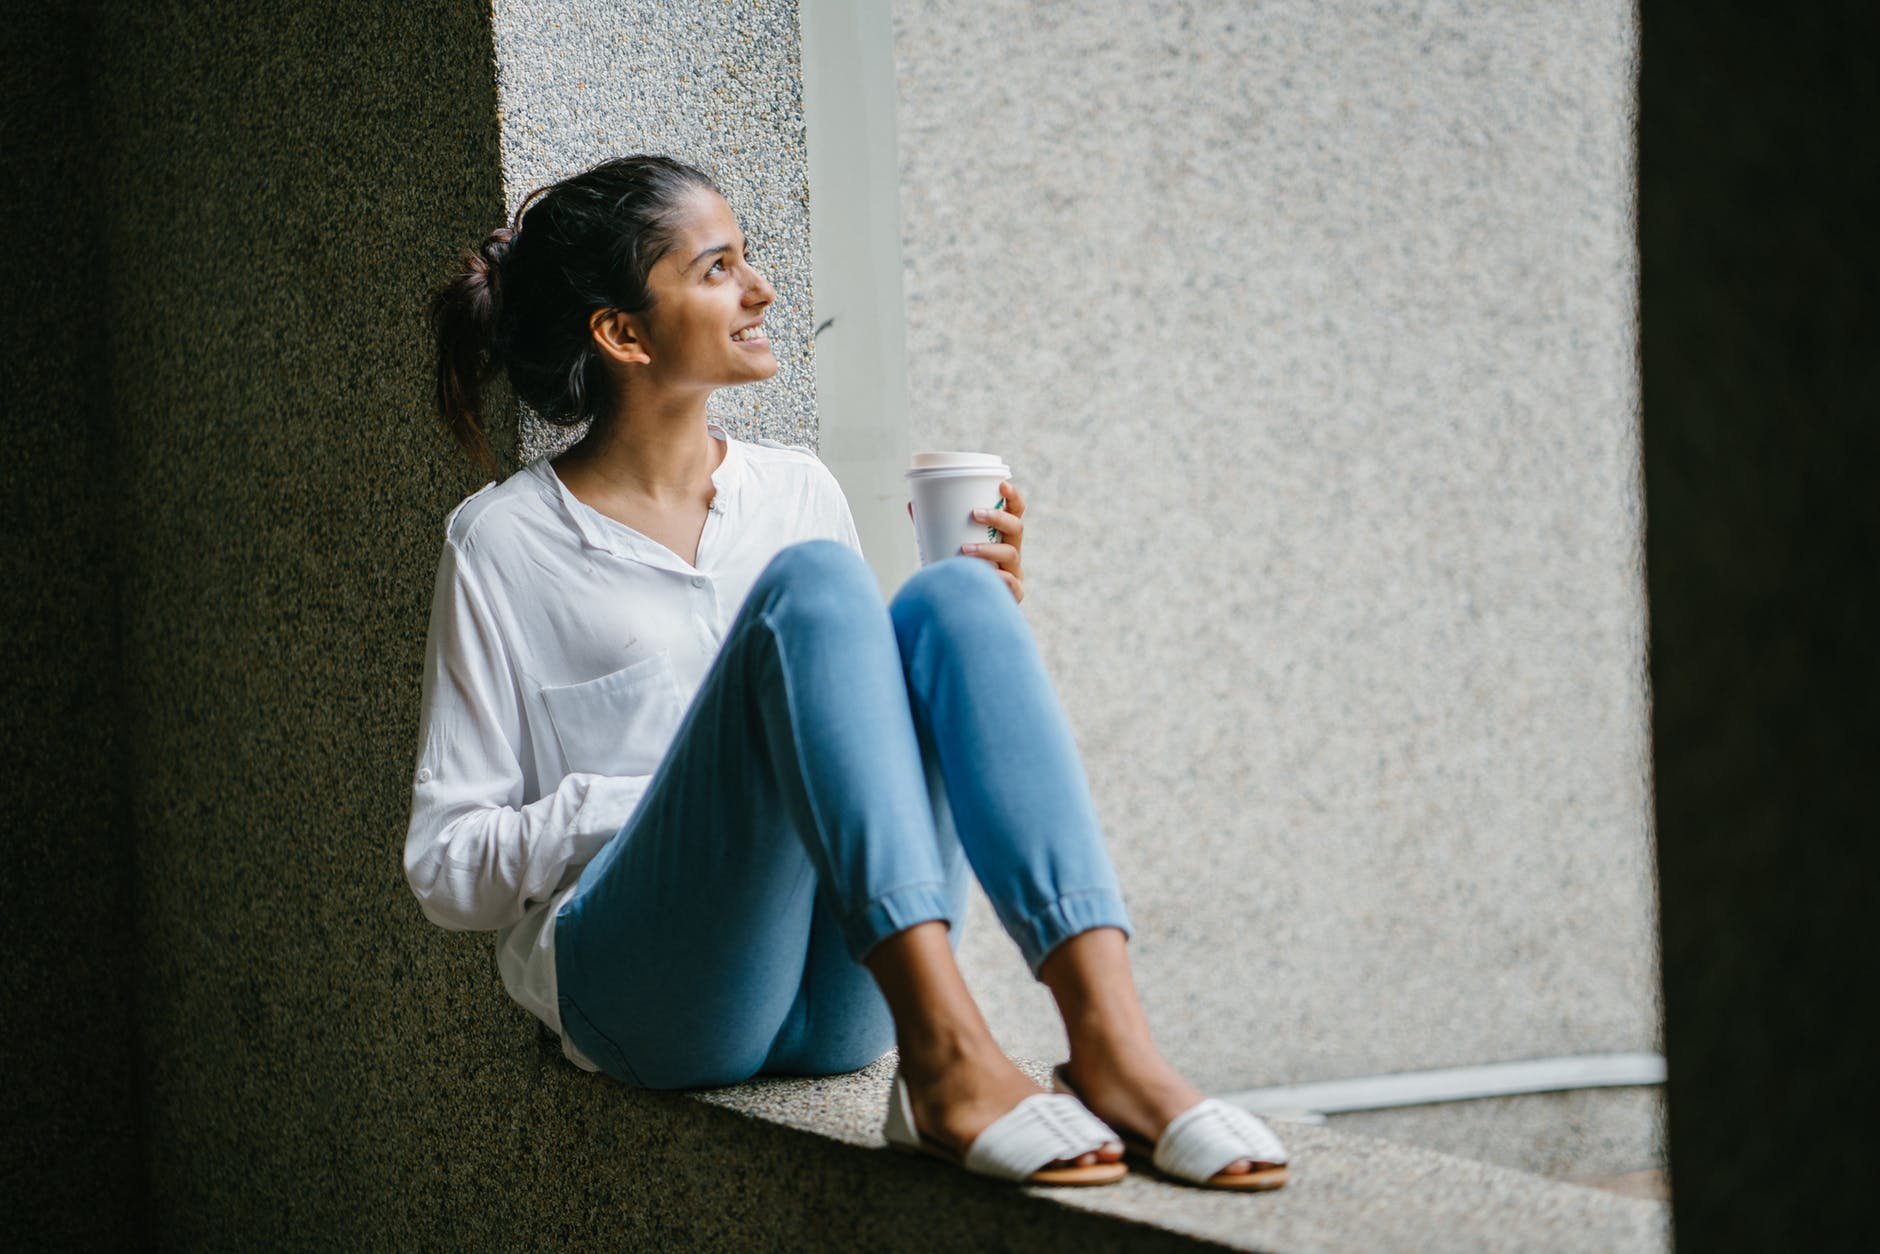 4 Ways to Cope from the COVID-19 Stress